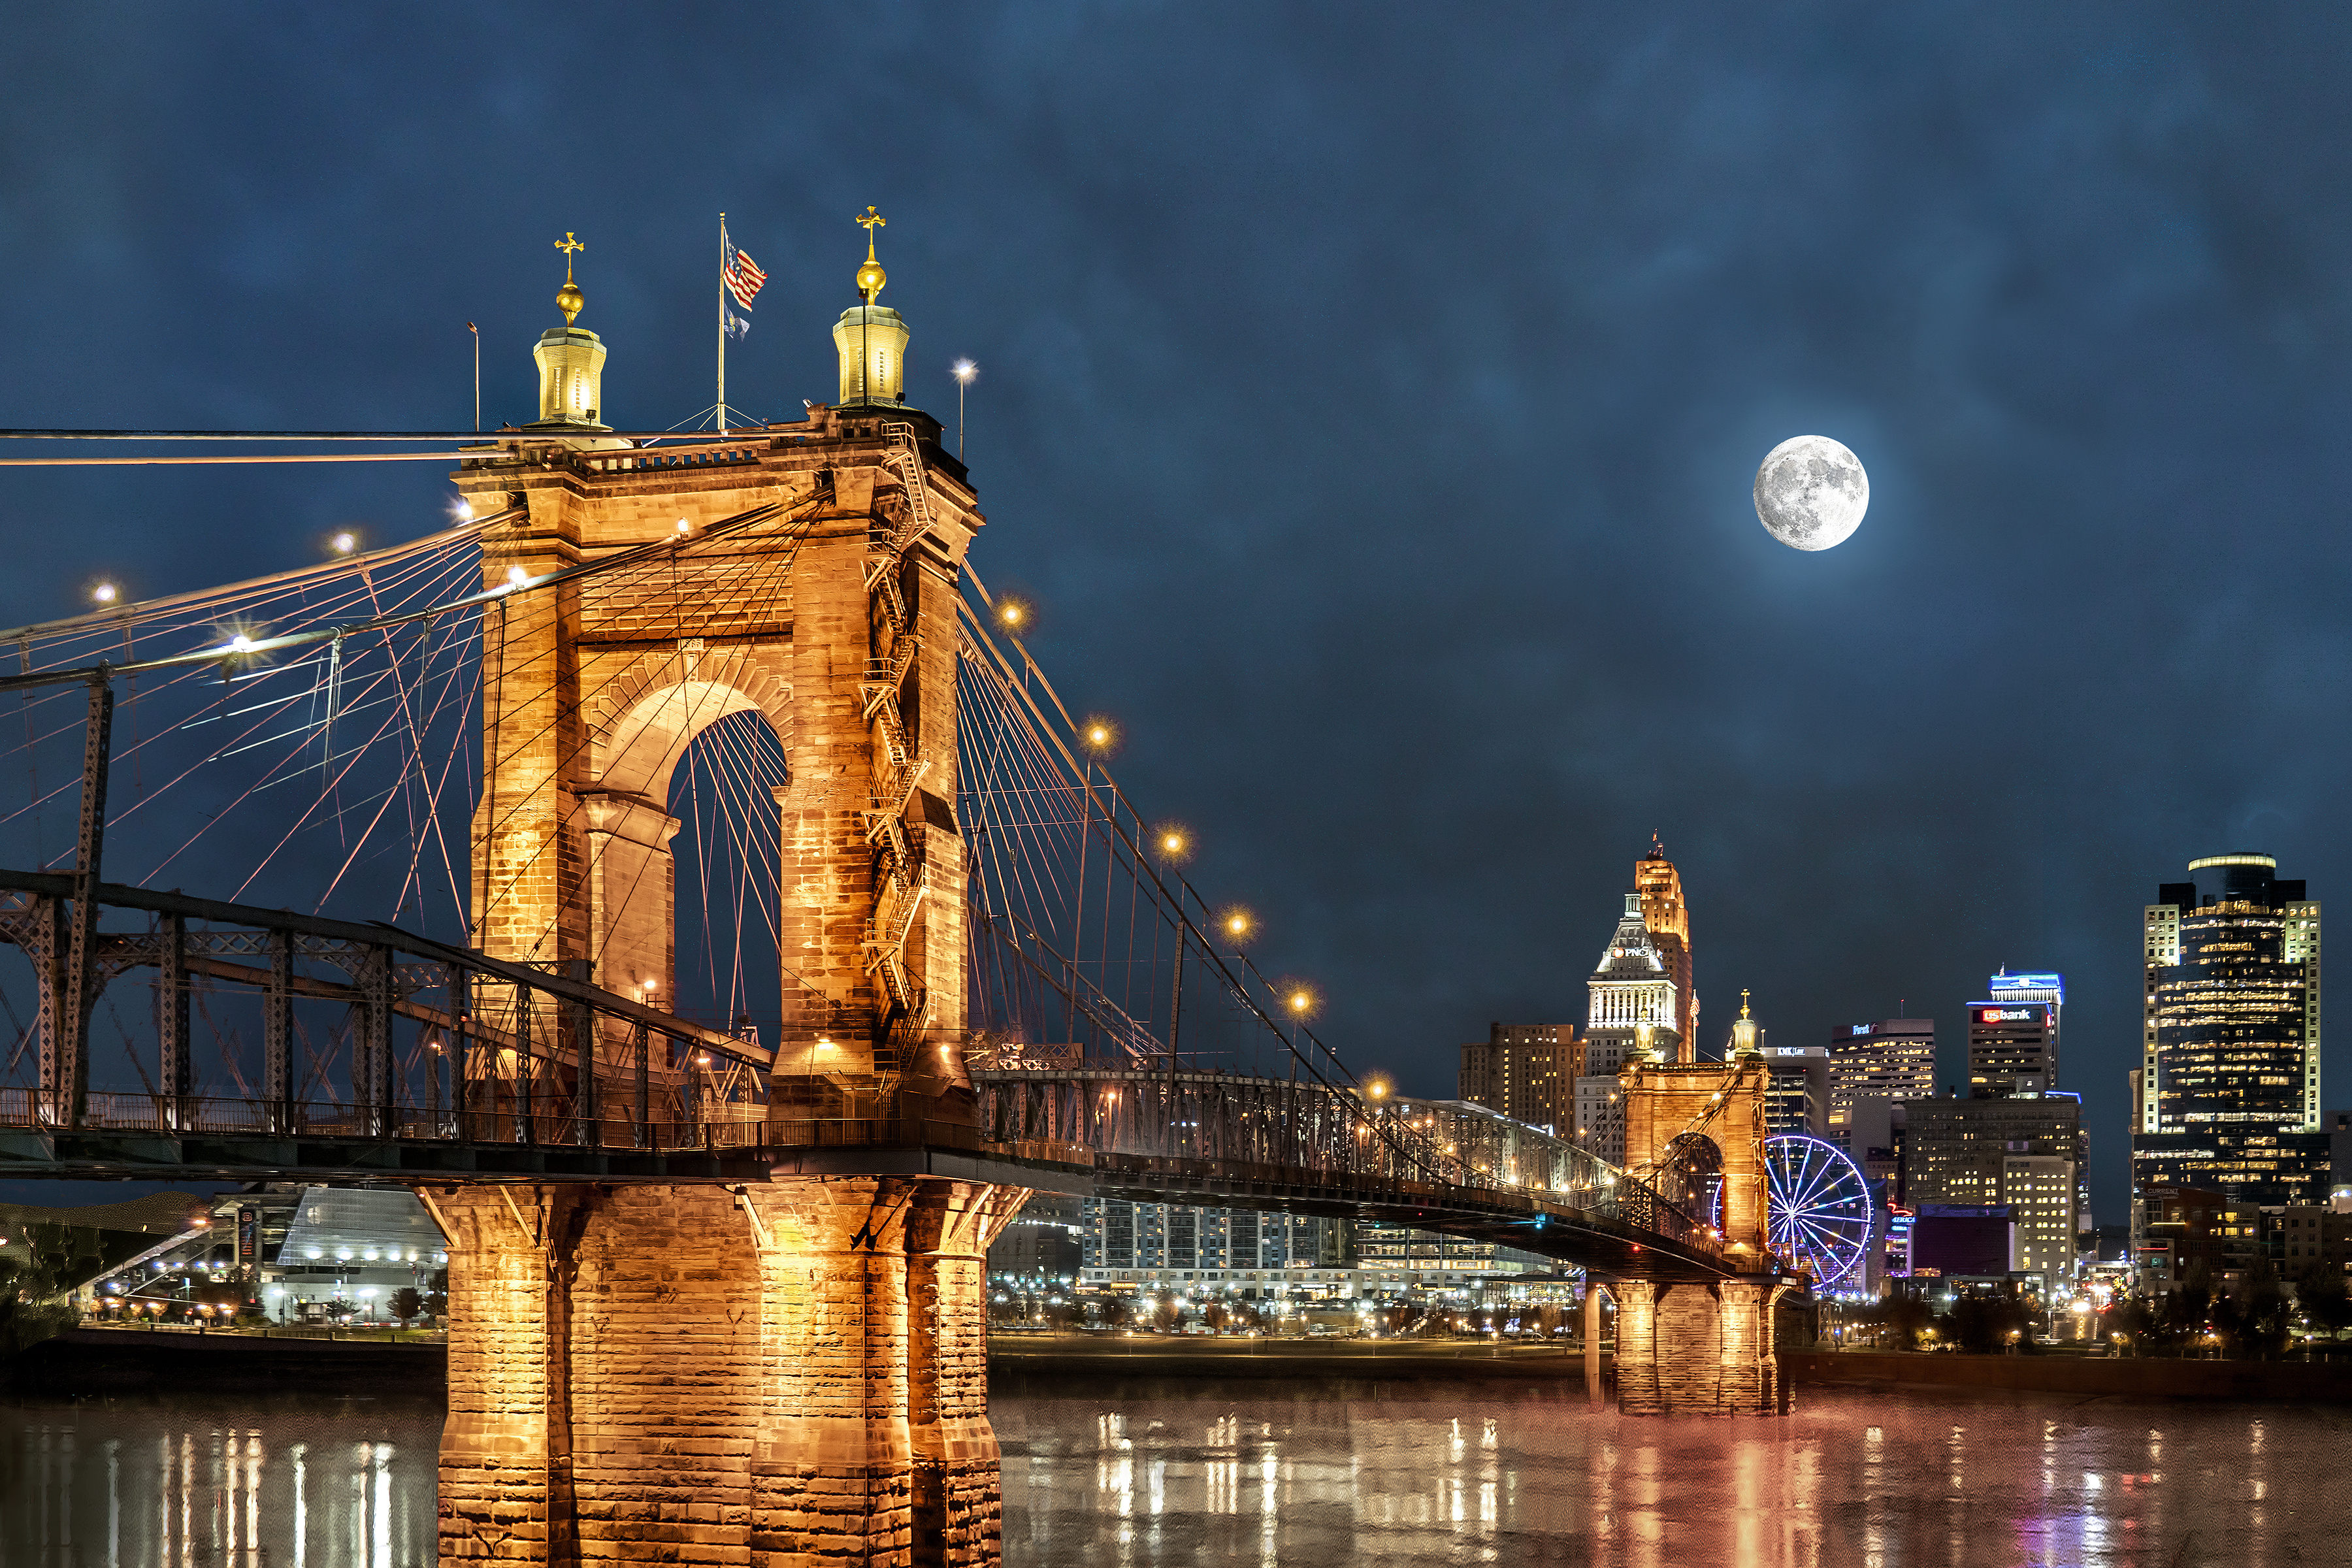 JOHN A. ROEBLING BRIDGE - When the first pedestrians crossed the bridge on December 1, 1866, it was the longest suspension bridge in the world. The first two days 166,000 people walked across the bridge. It formally opened on January 1 1867 with the toll for a horse and buggy of 15 cents. The pedestrian toll was one penny.